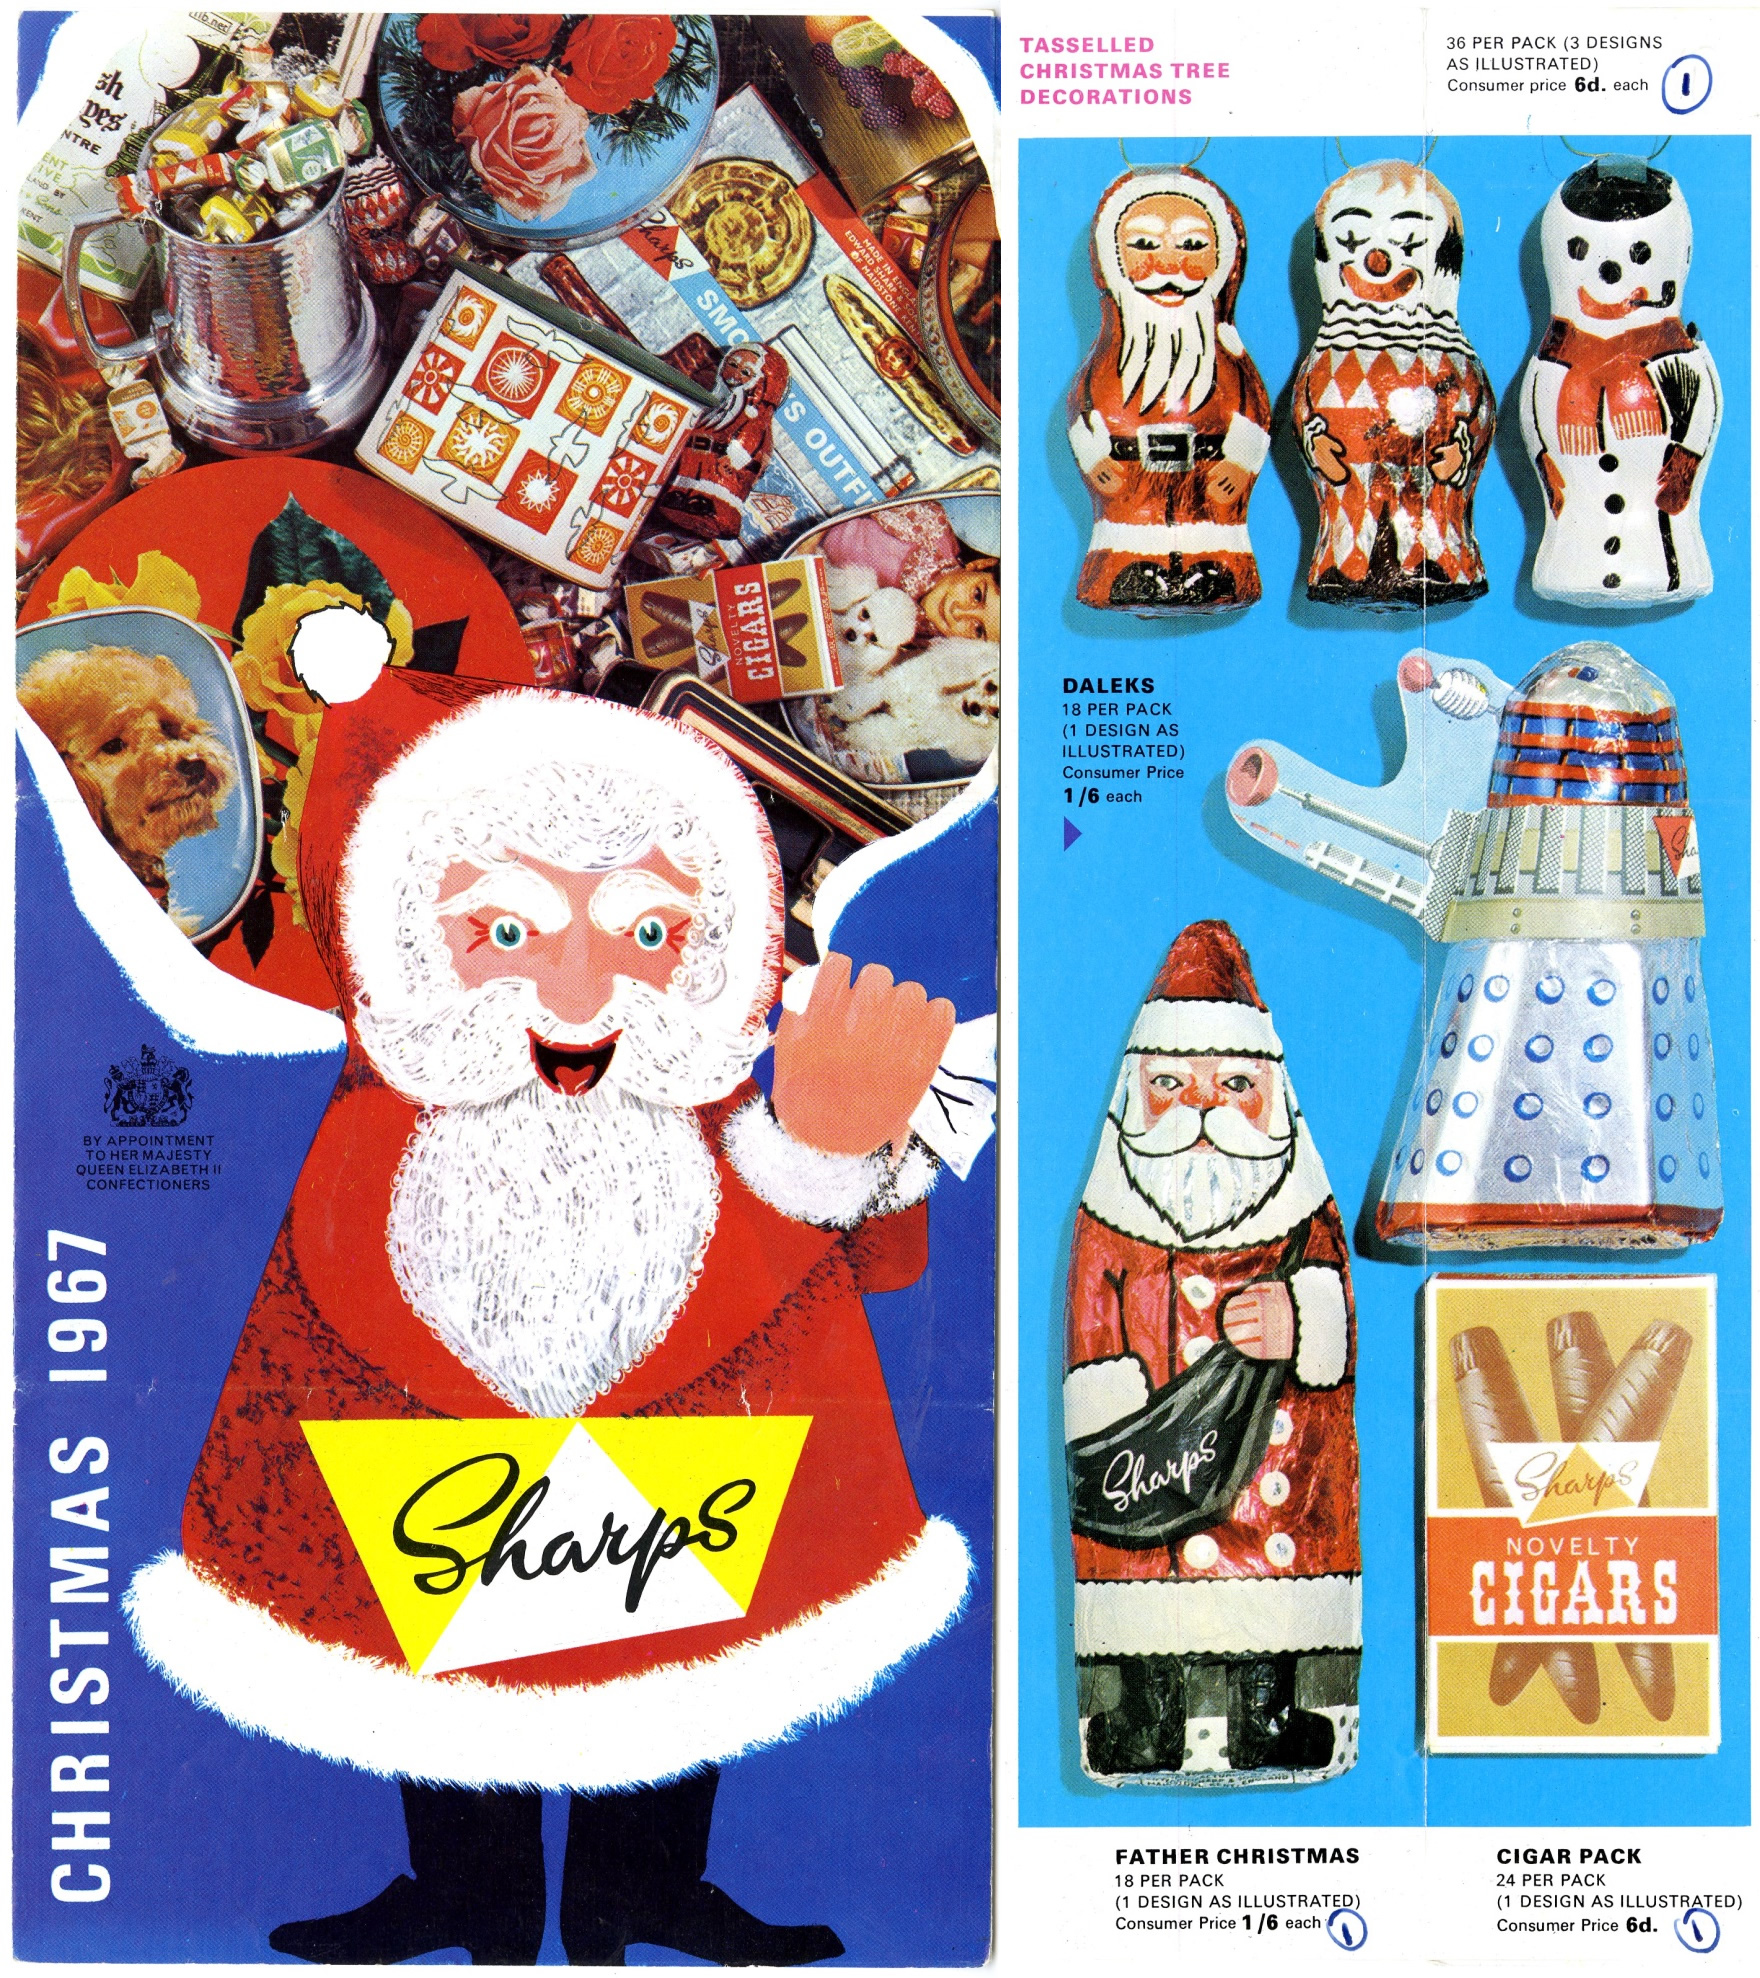 Edward Sharp and Sons Ltd. Christmas 1967 catalogue featuring a foil-wrapped chocolate Dalek novelty